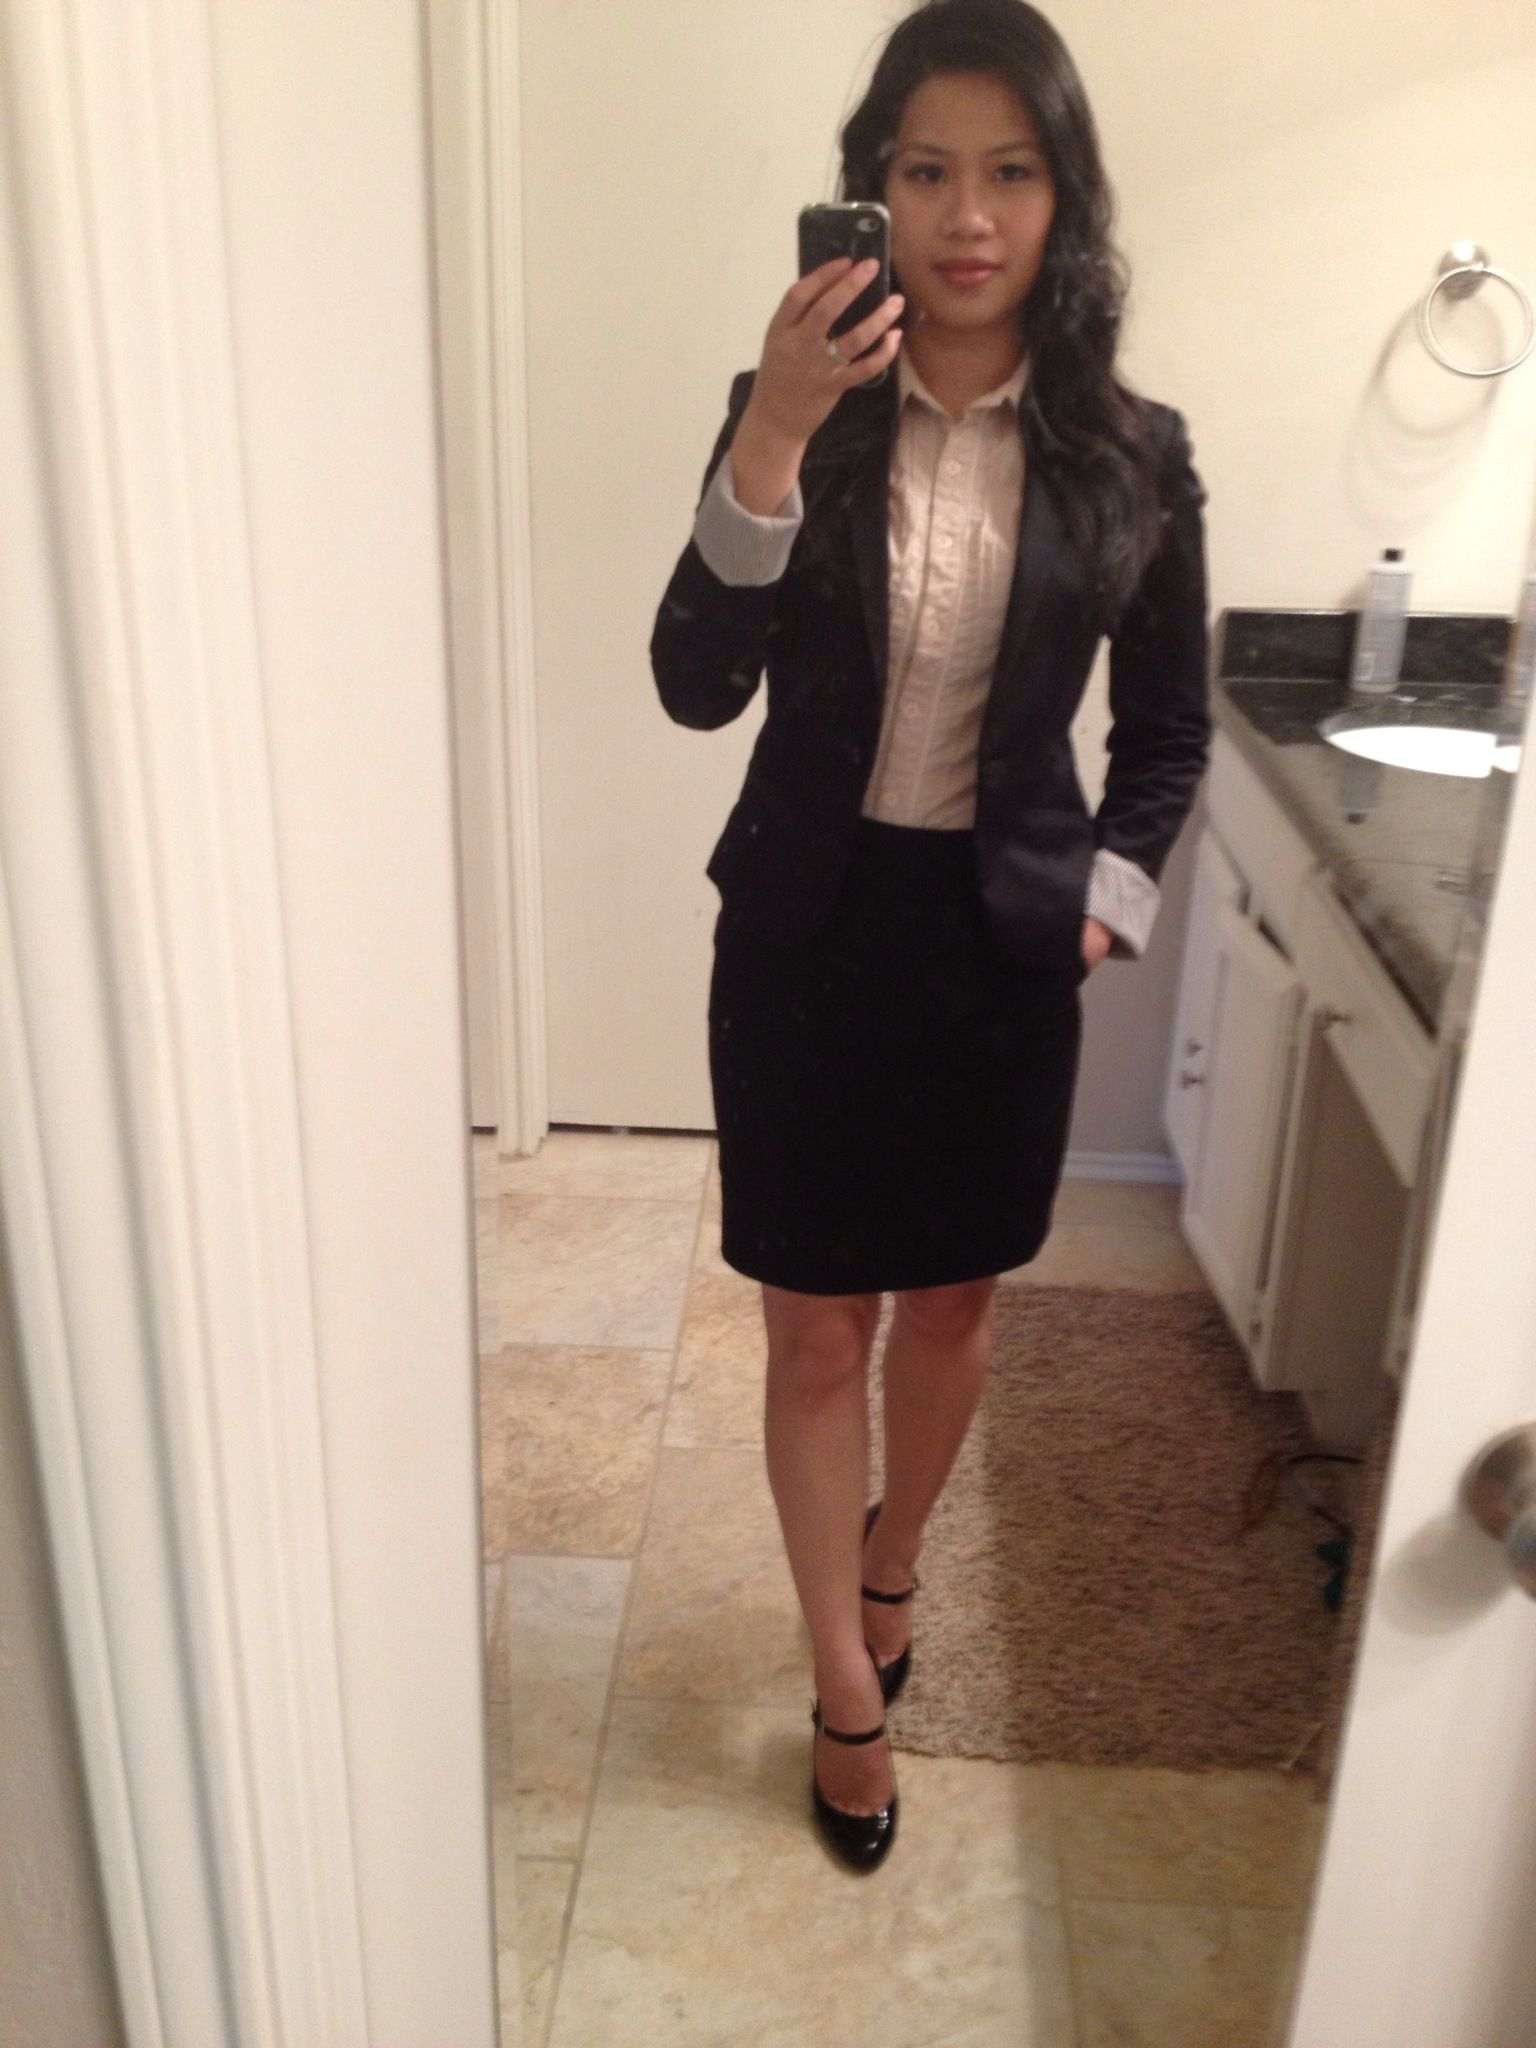 Interview outfit that helped me got the job ) | fashion styles I love to wear | Pinterest ...